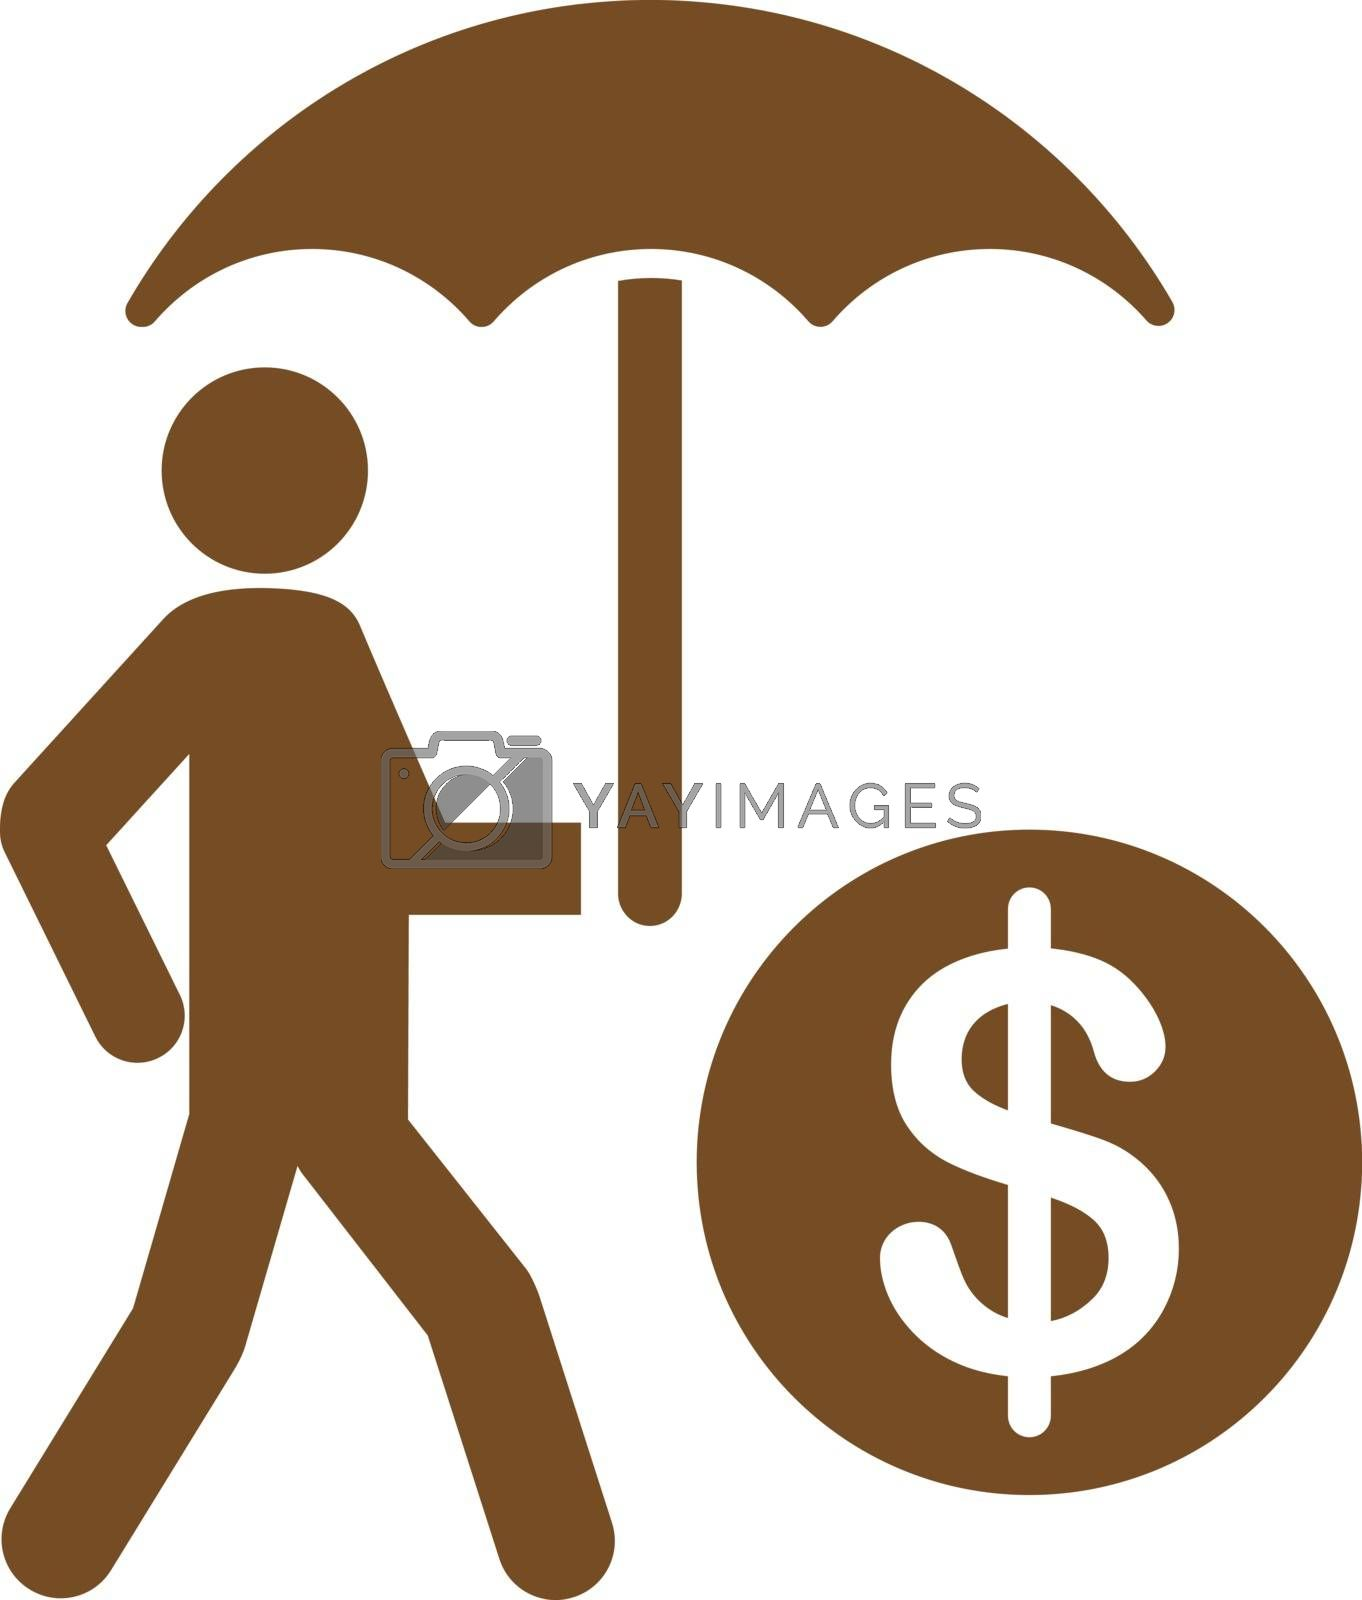 Financial insurance icon from Business Bicolor Set. Vector style is flat symbols, brown color, rounded angles, white background.